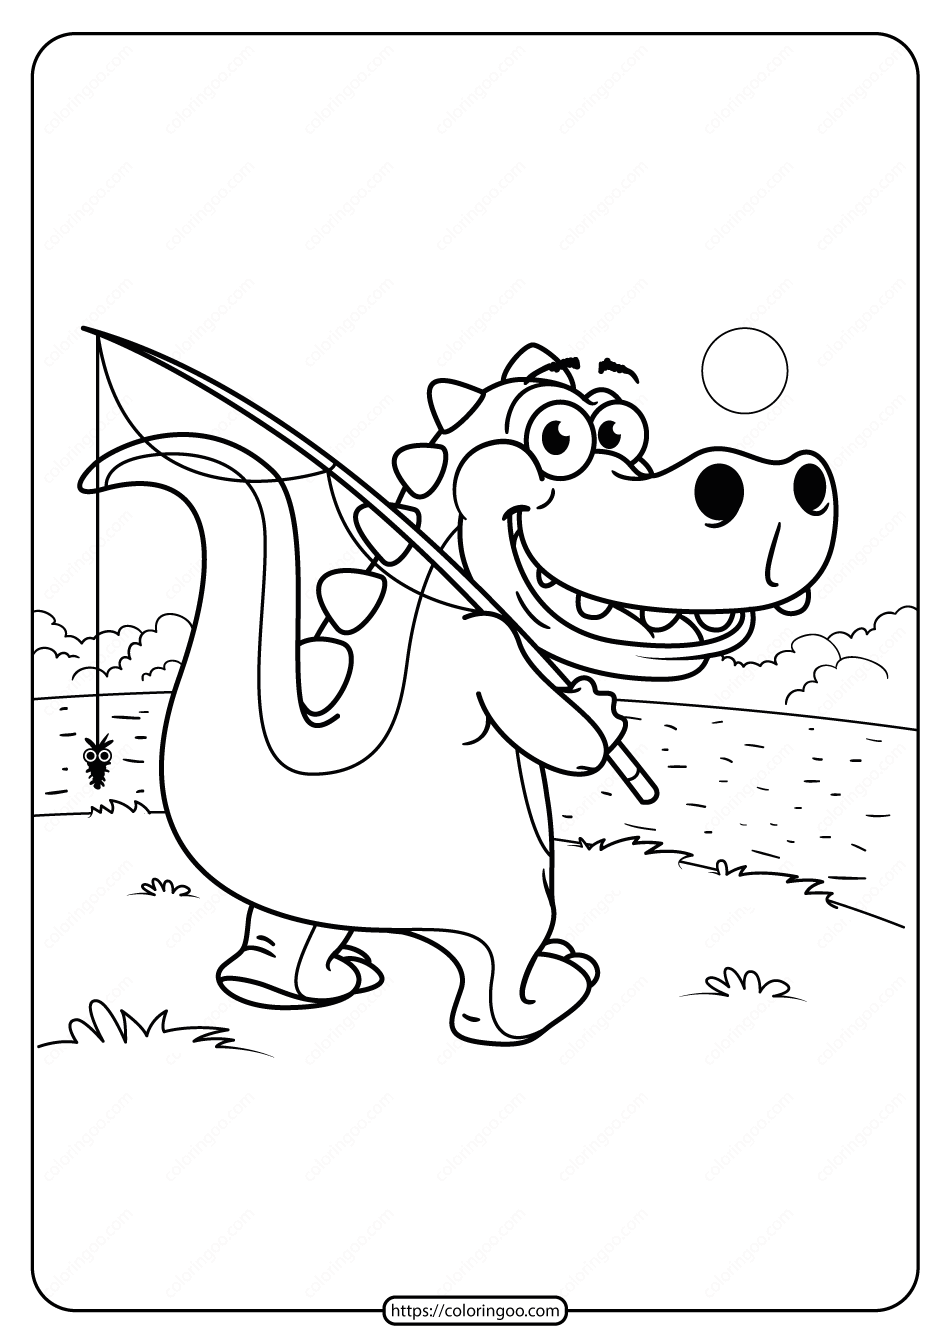 Free Printable Animals Dinosaur Coloring Pages 08